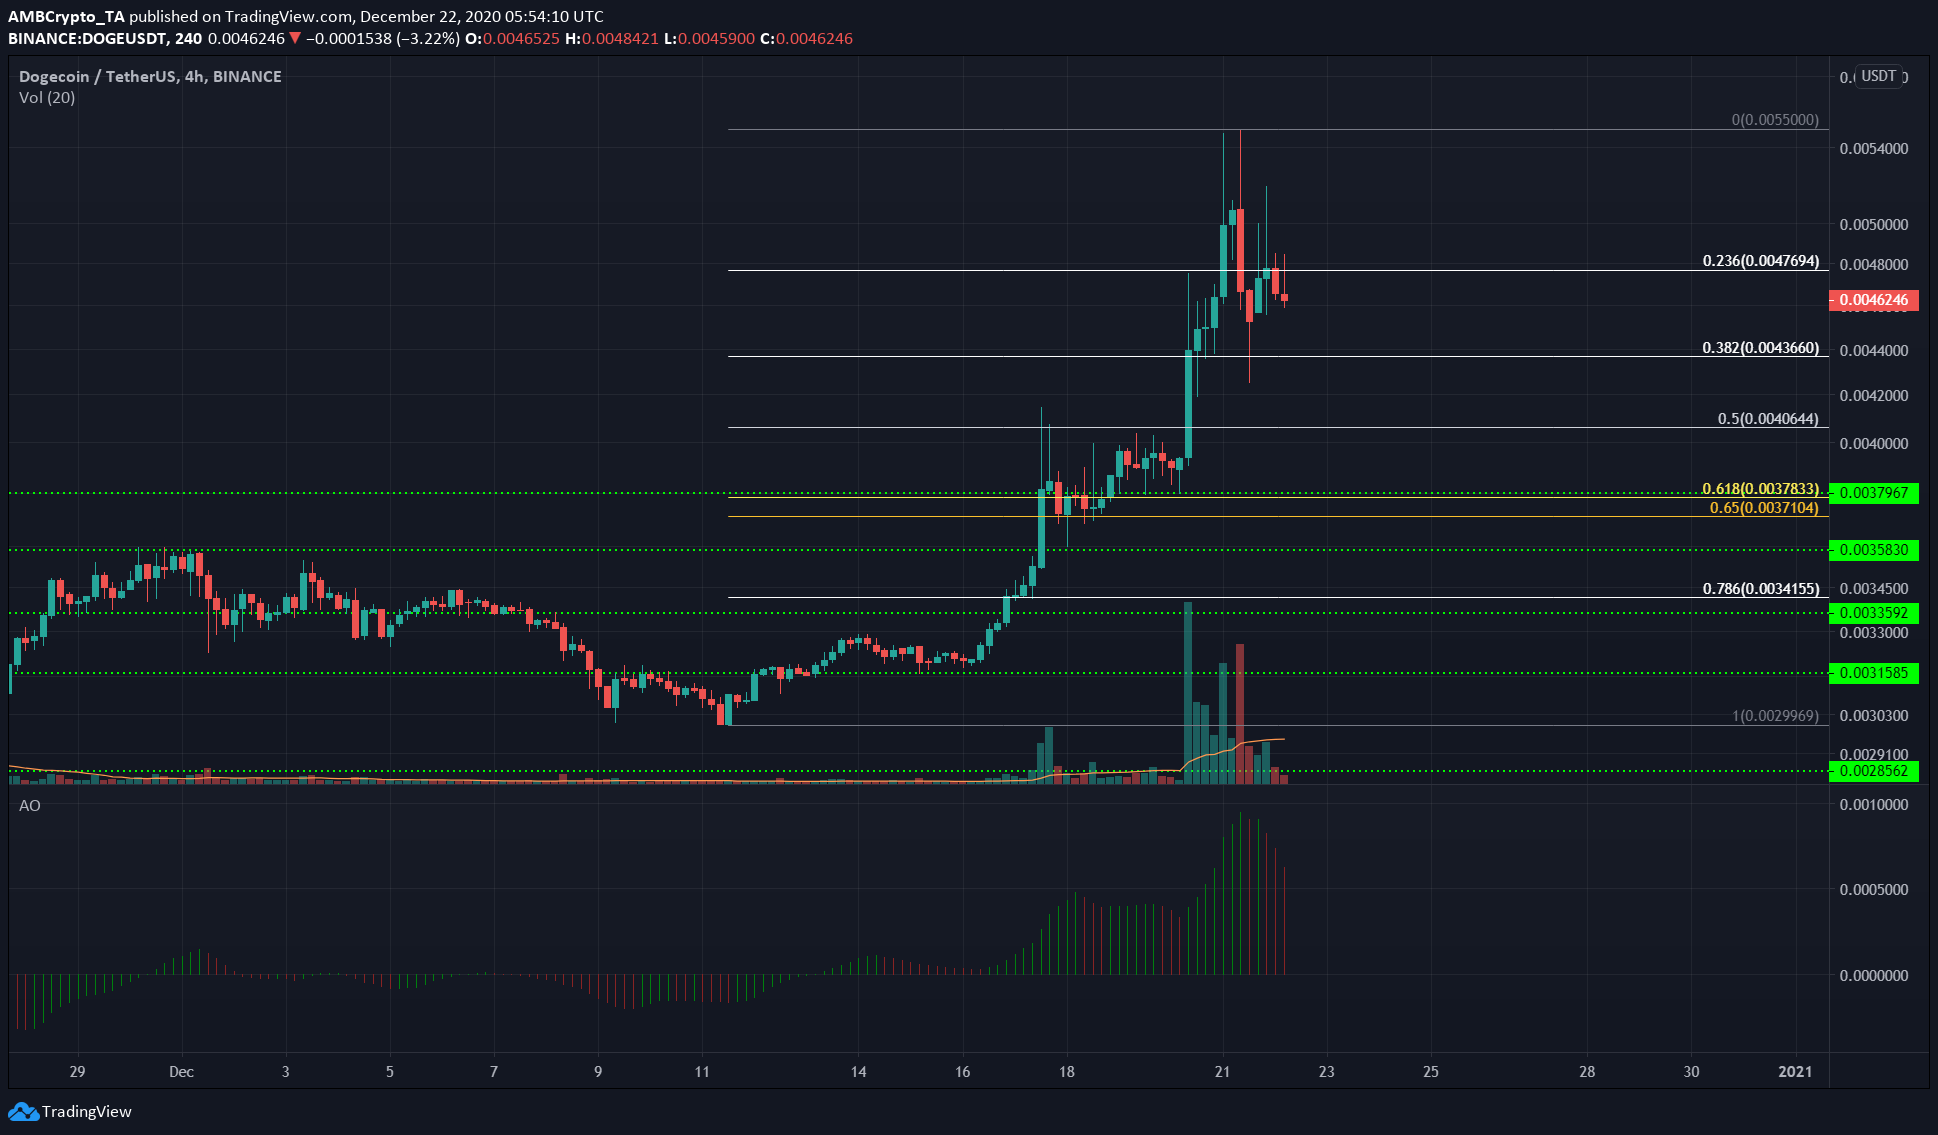 Chainlink, Tezos, Dogecoin Price Analysis: 22 December